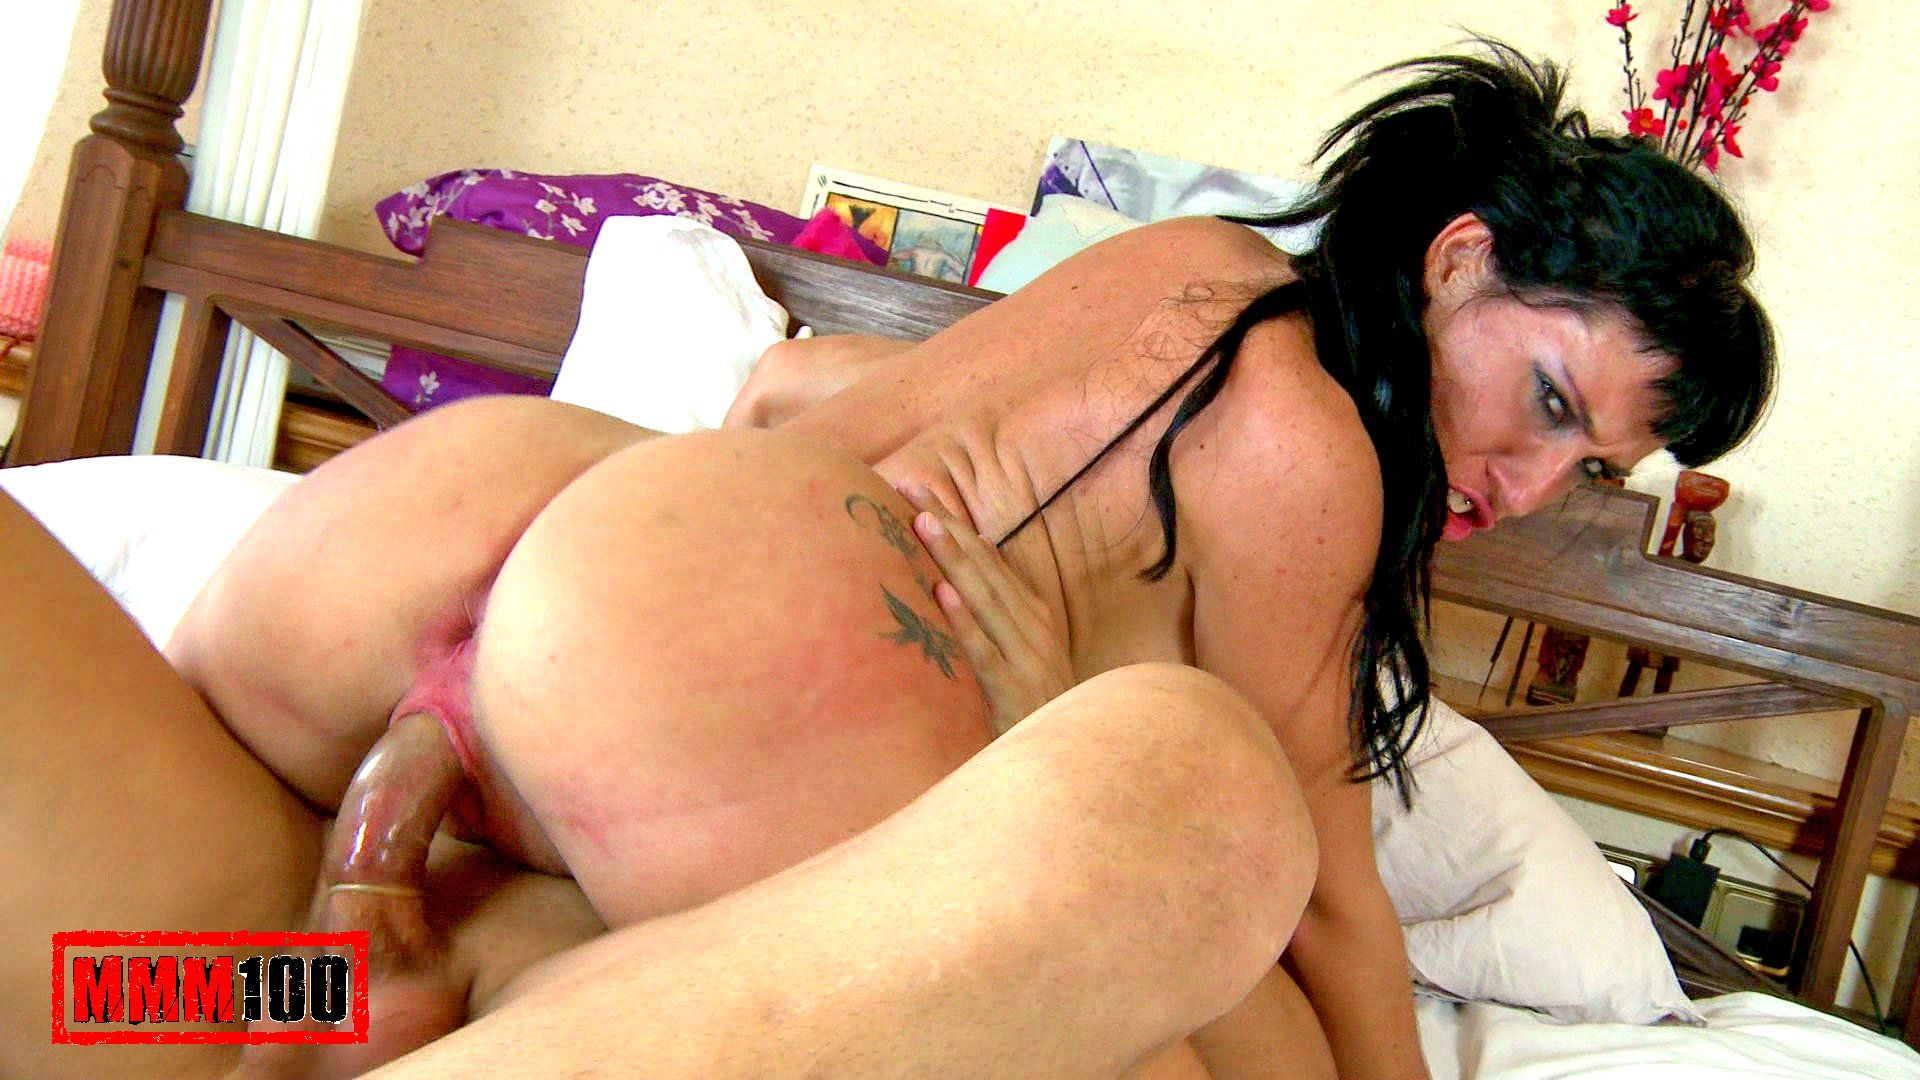 Suhaila Hard & Jorge in Suhaila The Spanish Pornstar Of The Future - MMM100 indian womens are fucking each other